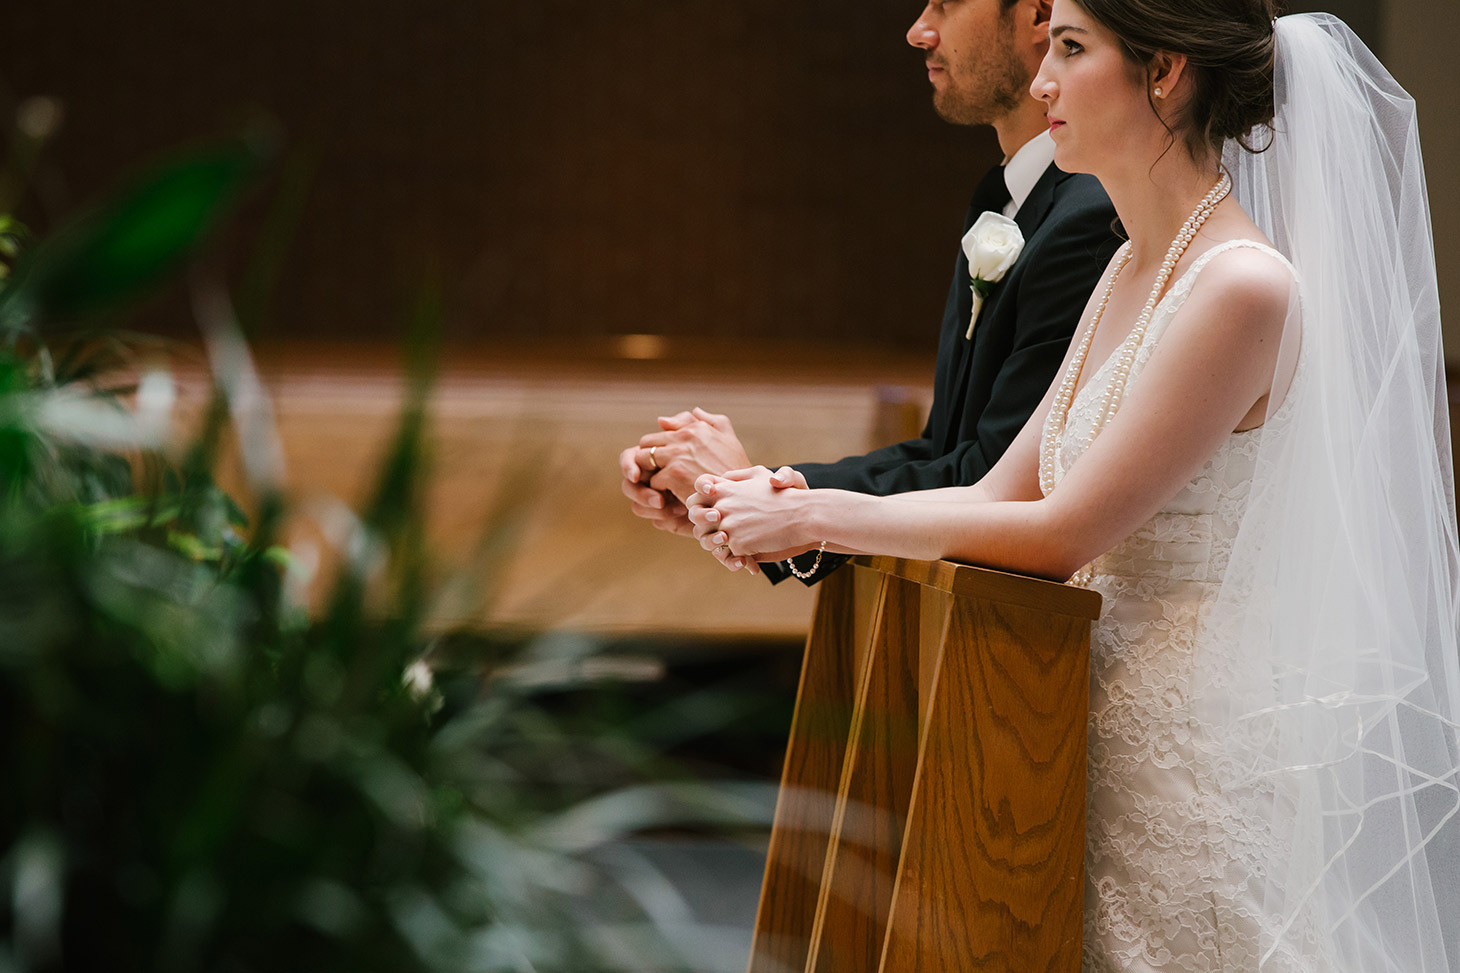 Megan-Newton-Photography-Best-Wedding-Photos-2015-041